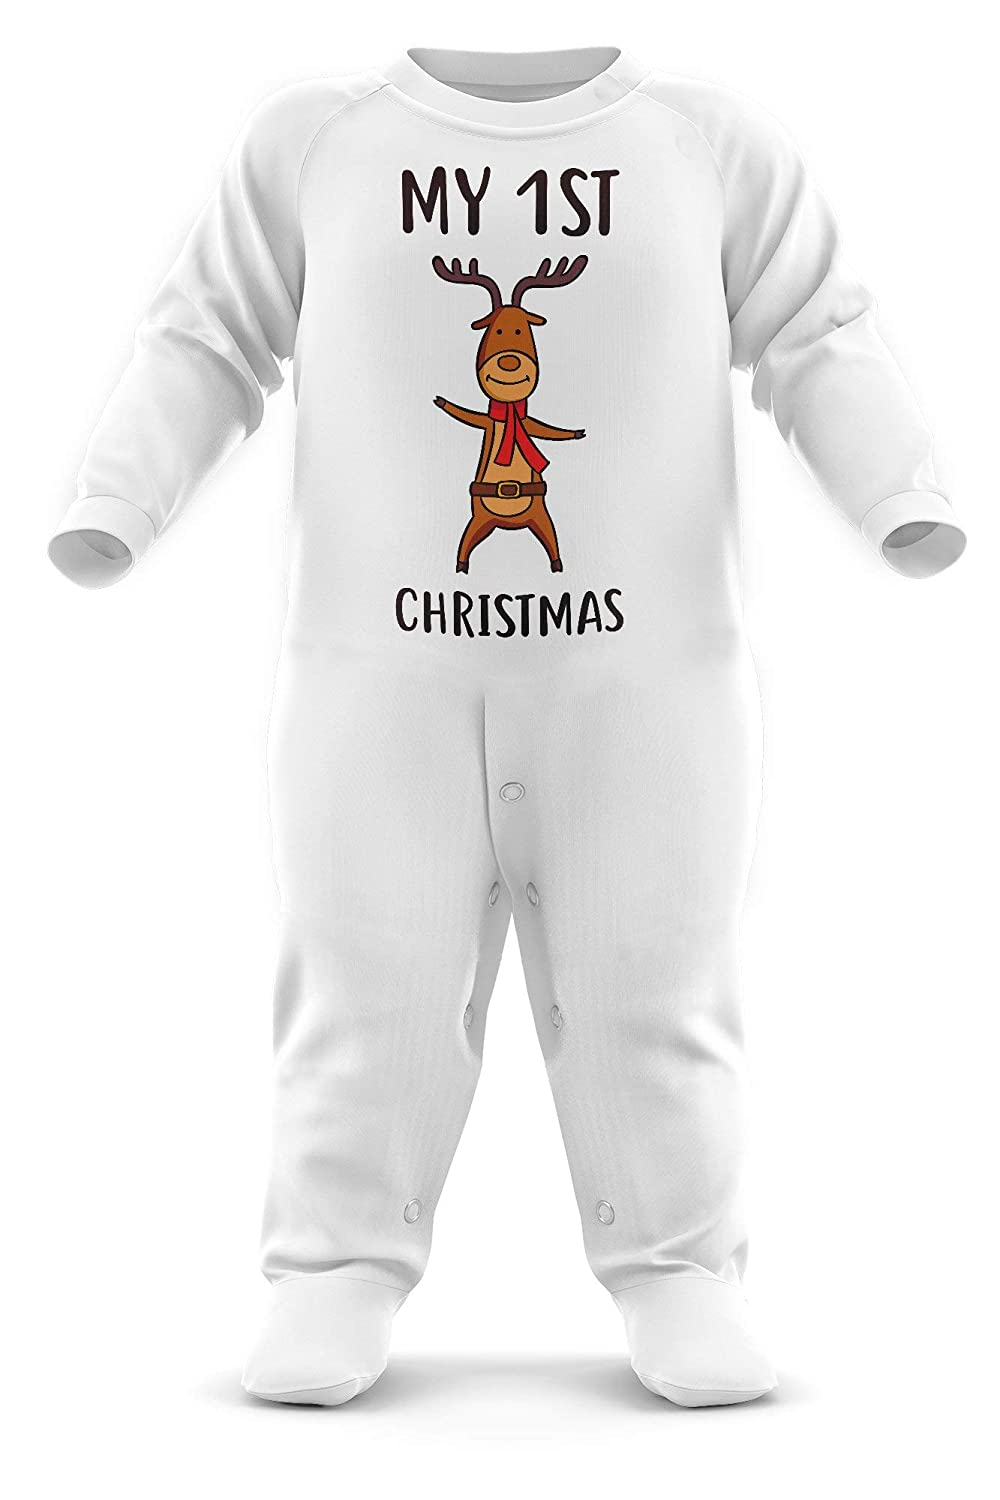 My First Xmas Babygrow Baby Christmas Outfit Cute First Xmas Gifts Christmas Pyjamas Babys First Christmas FunkyShirt My First Christmas Reindeer Baby Romper Suit